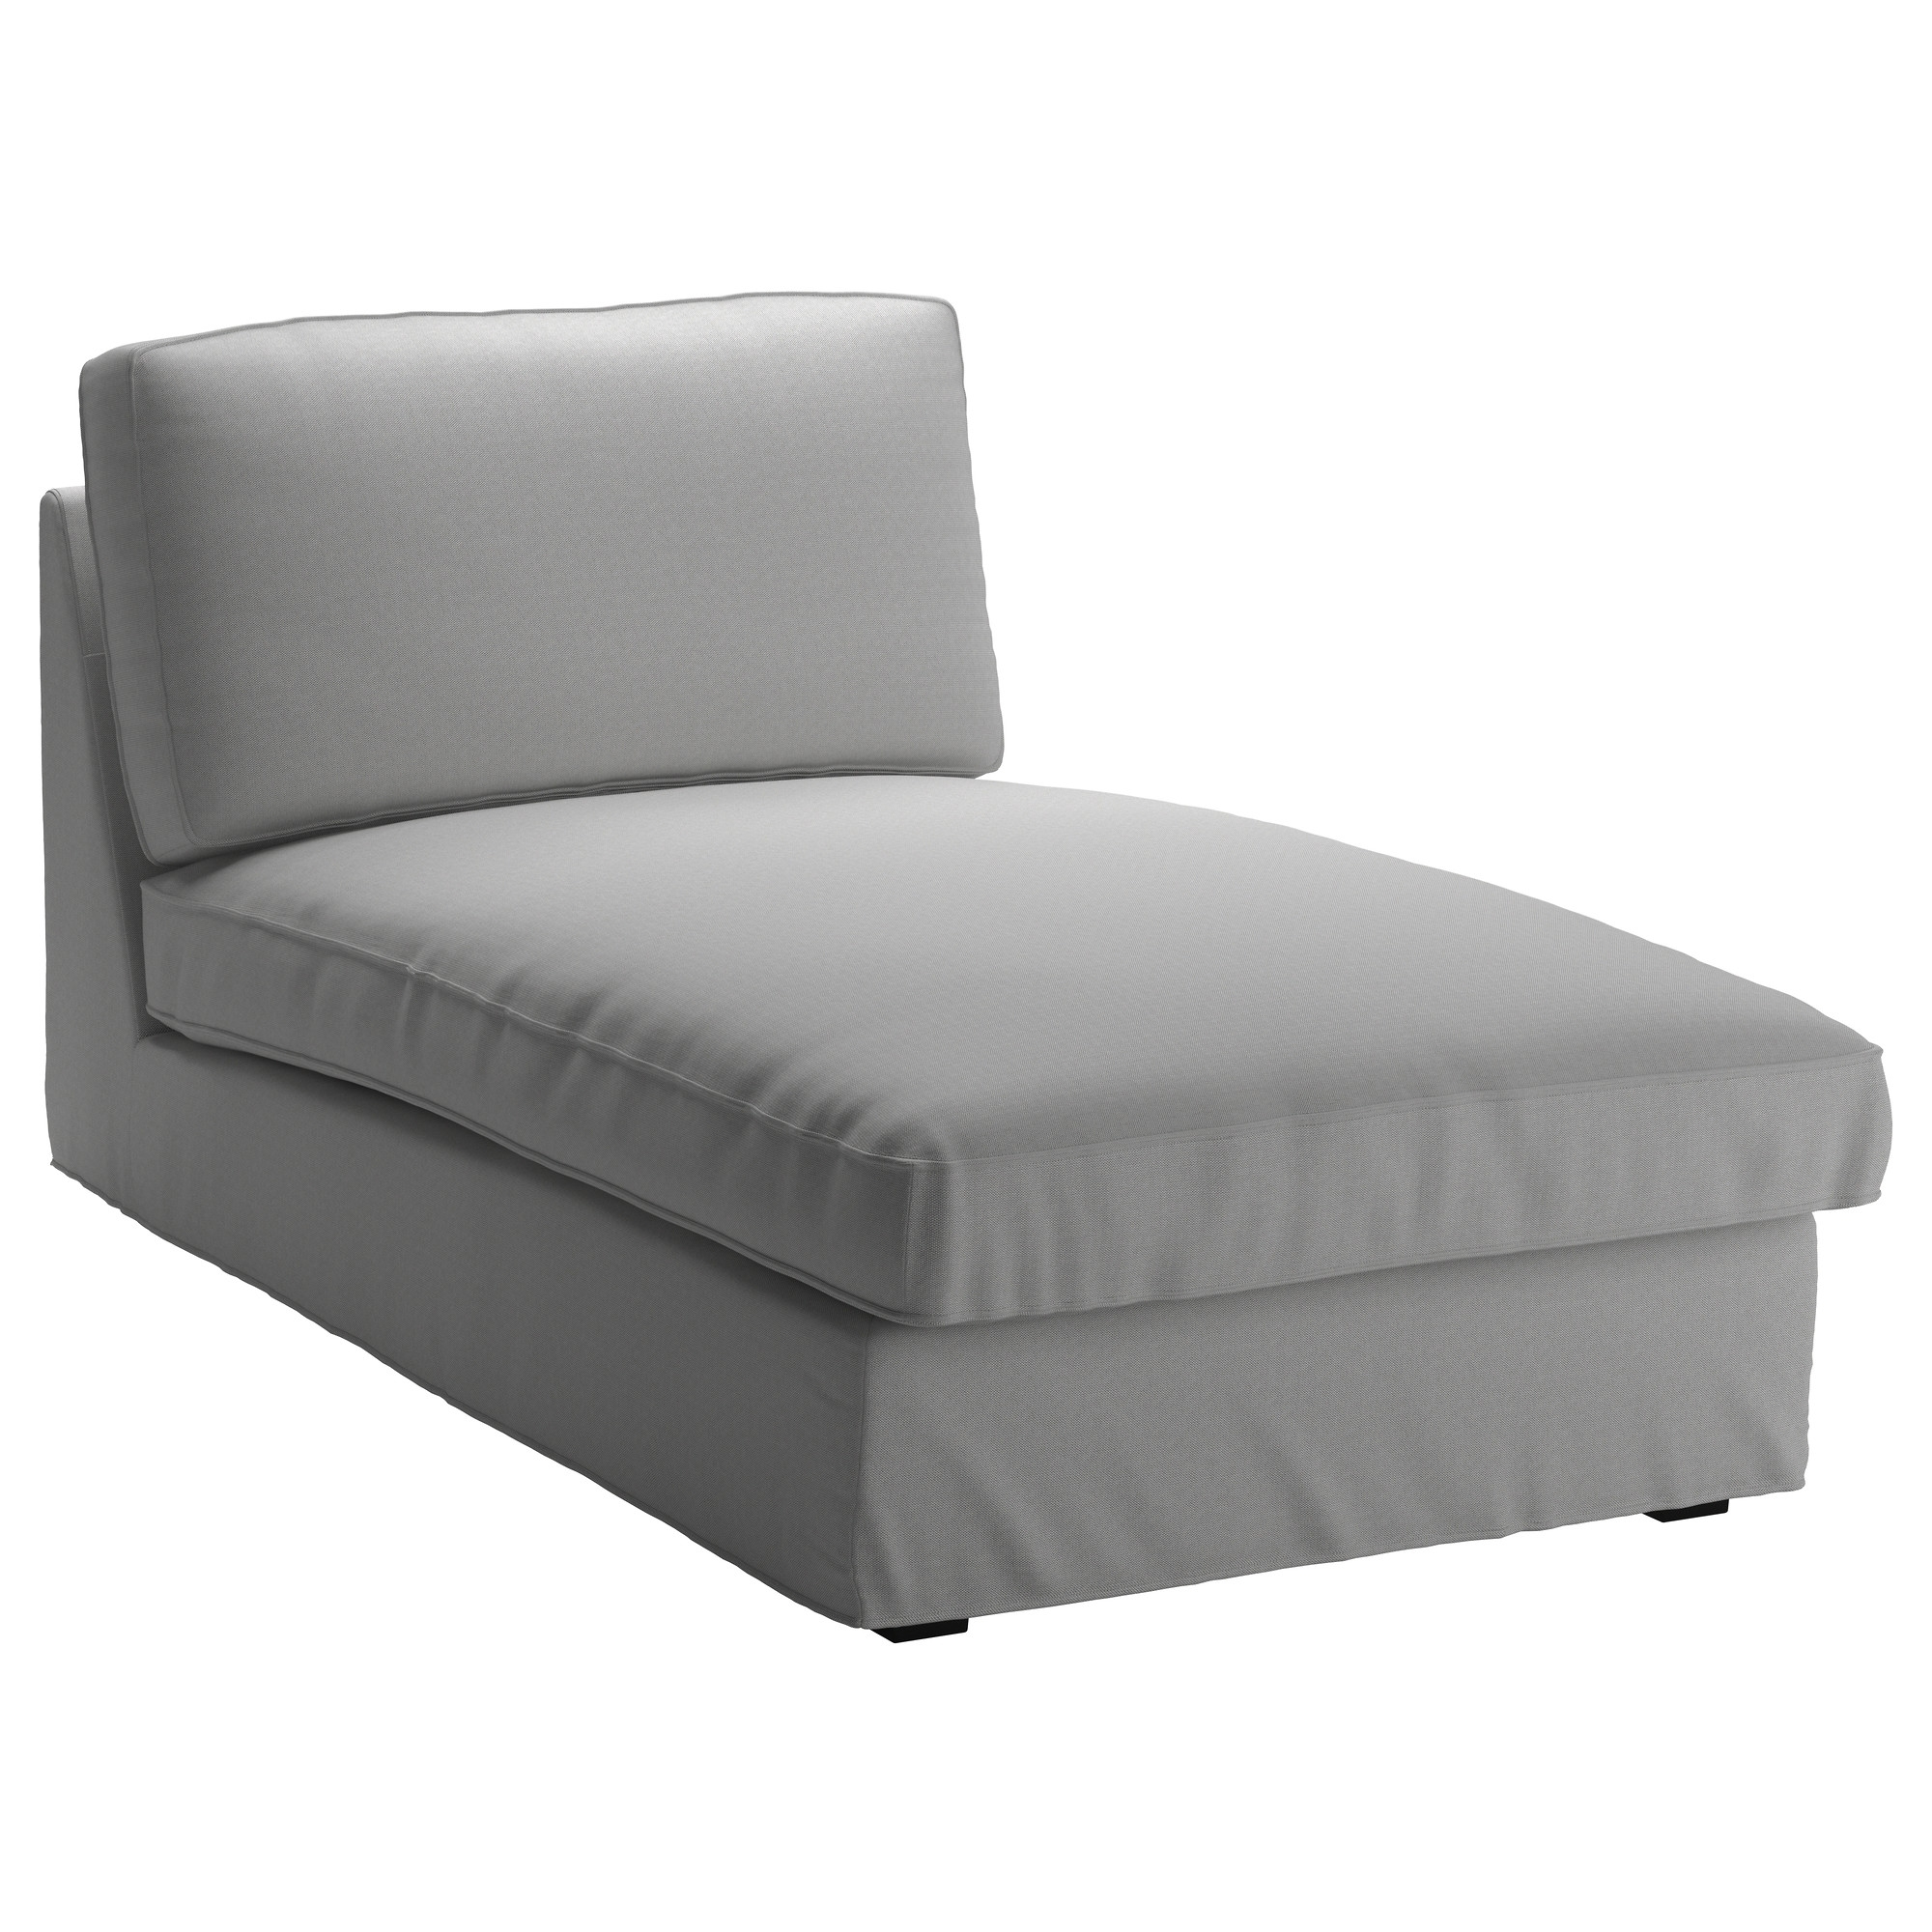 Chaise ikea amazing chaise ikea with chaise ikea perfect for Daybed cushion ikea